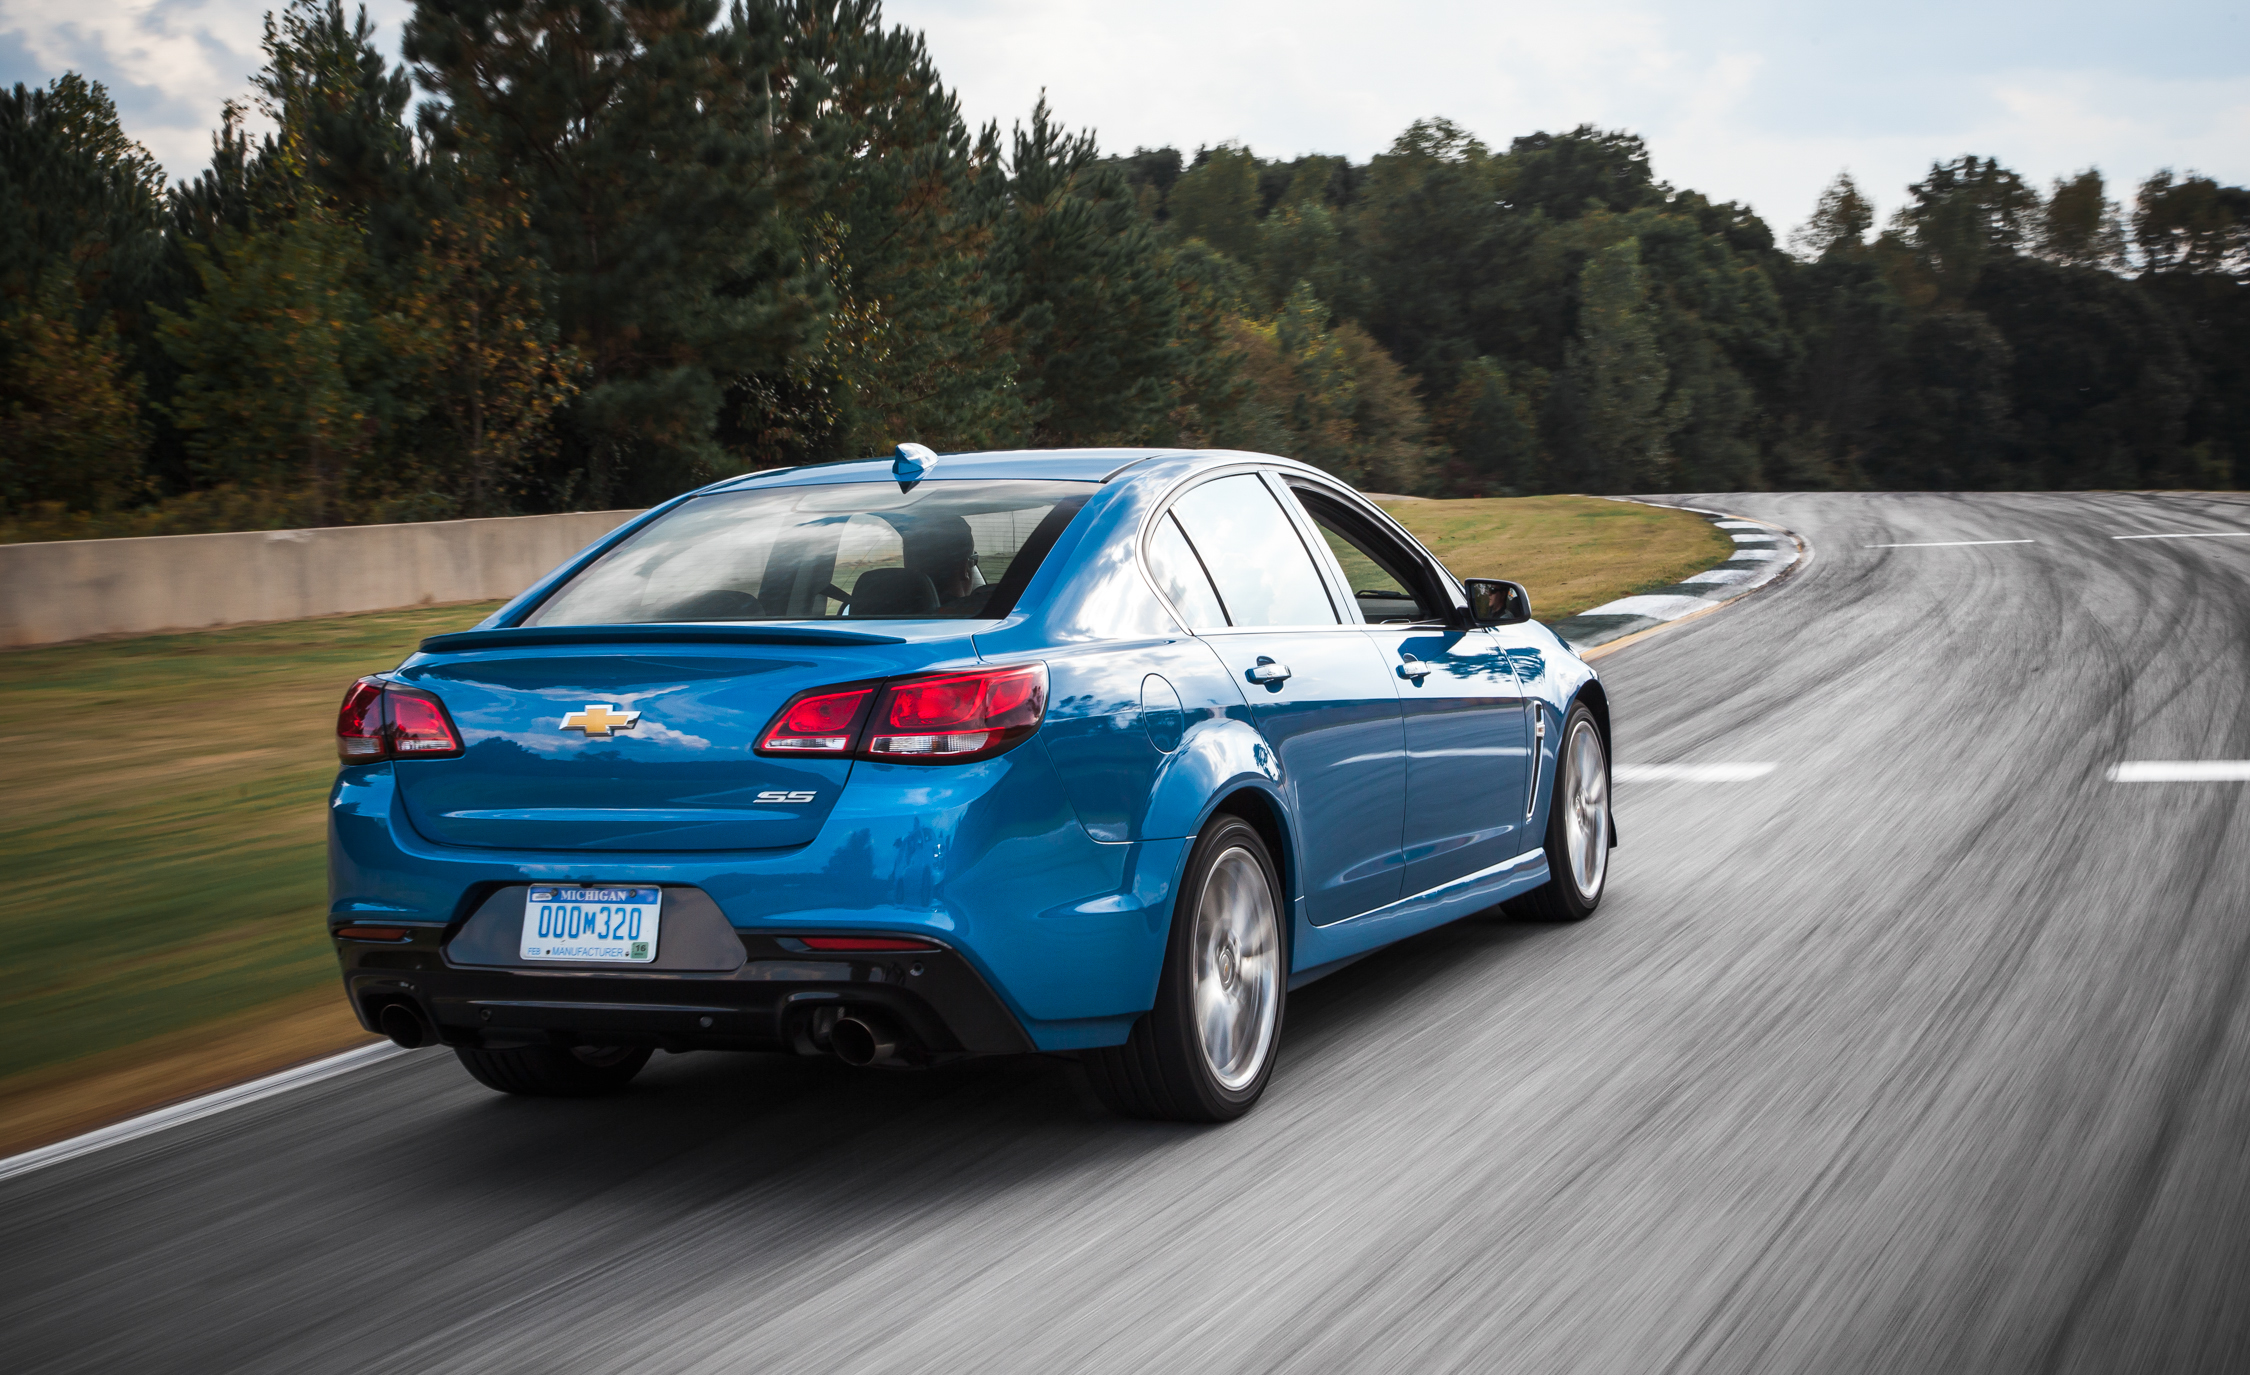 2015 Chevrolet SS (View 3 of 27)